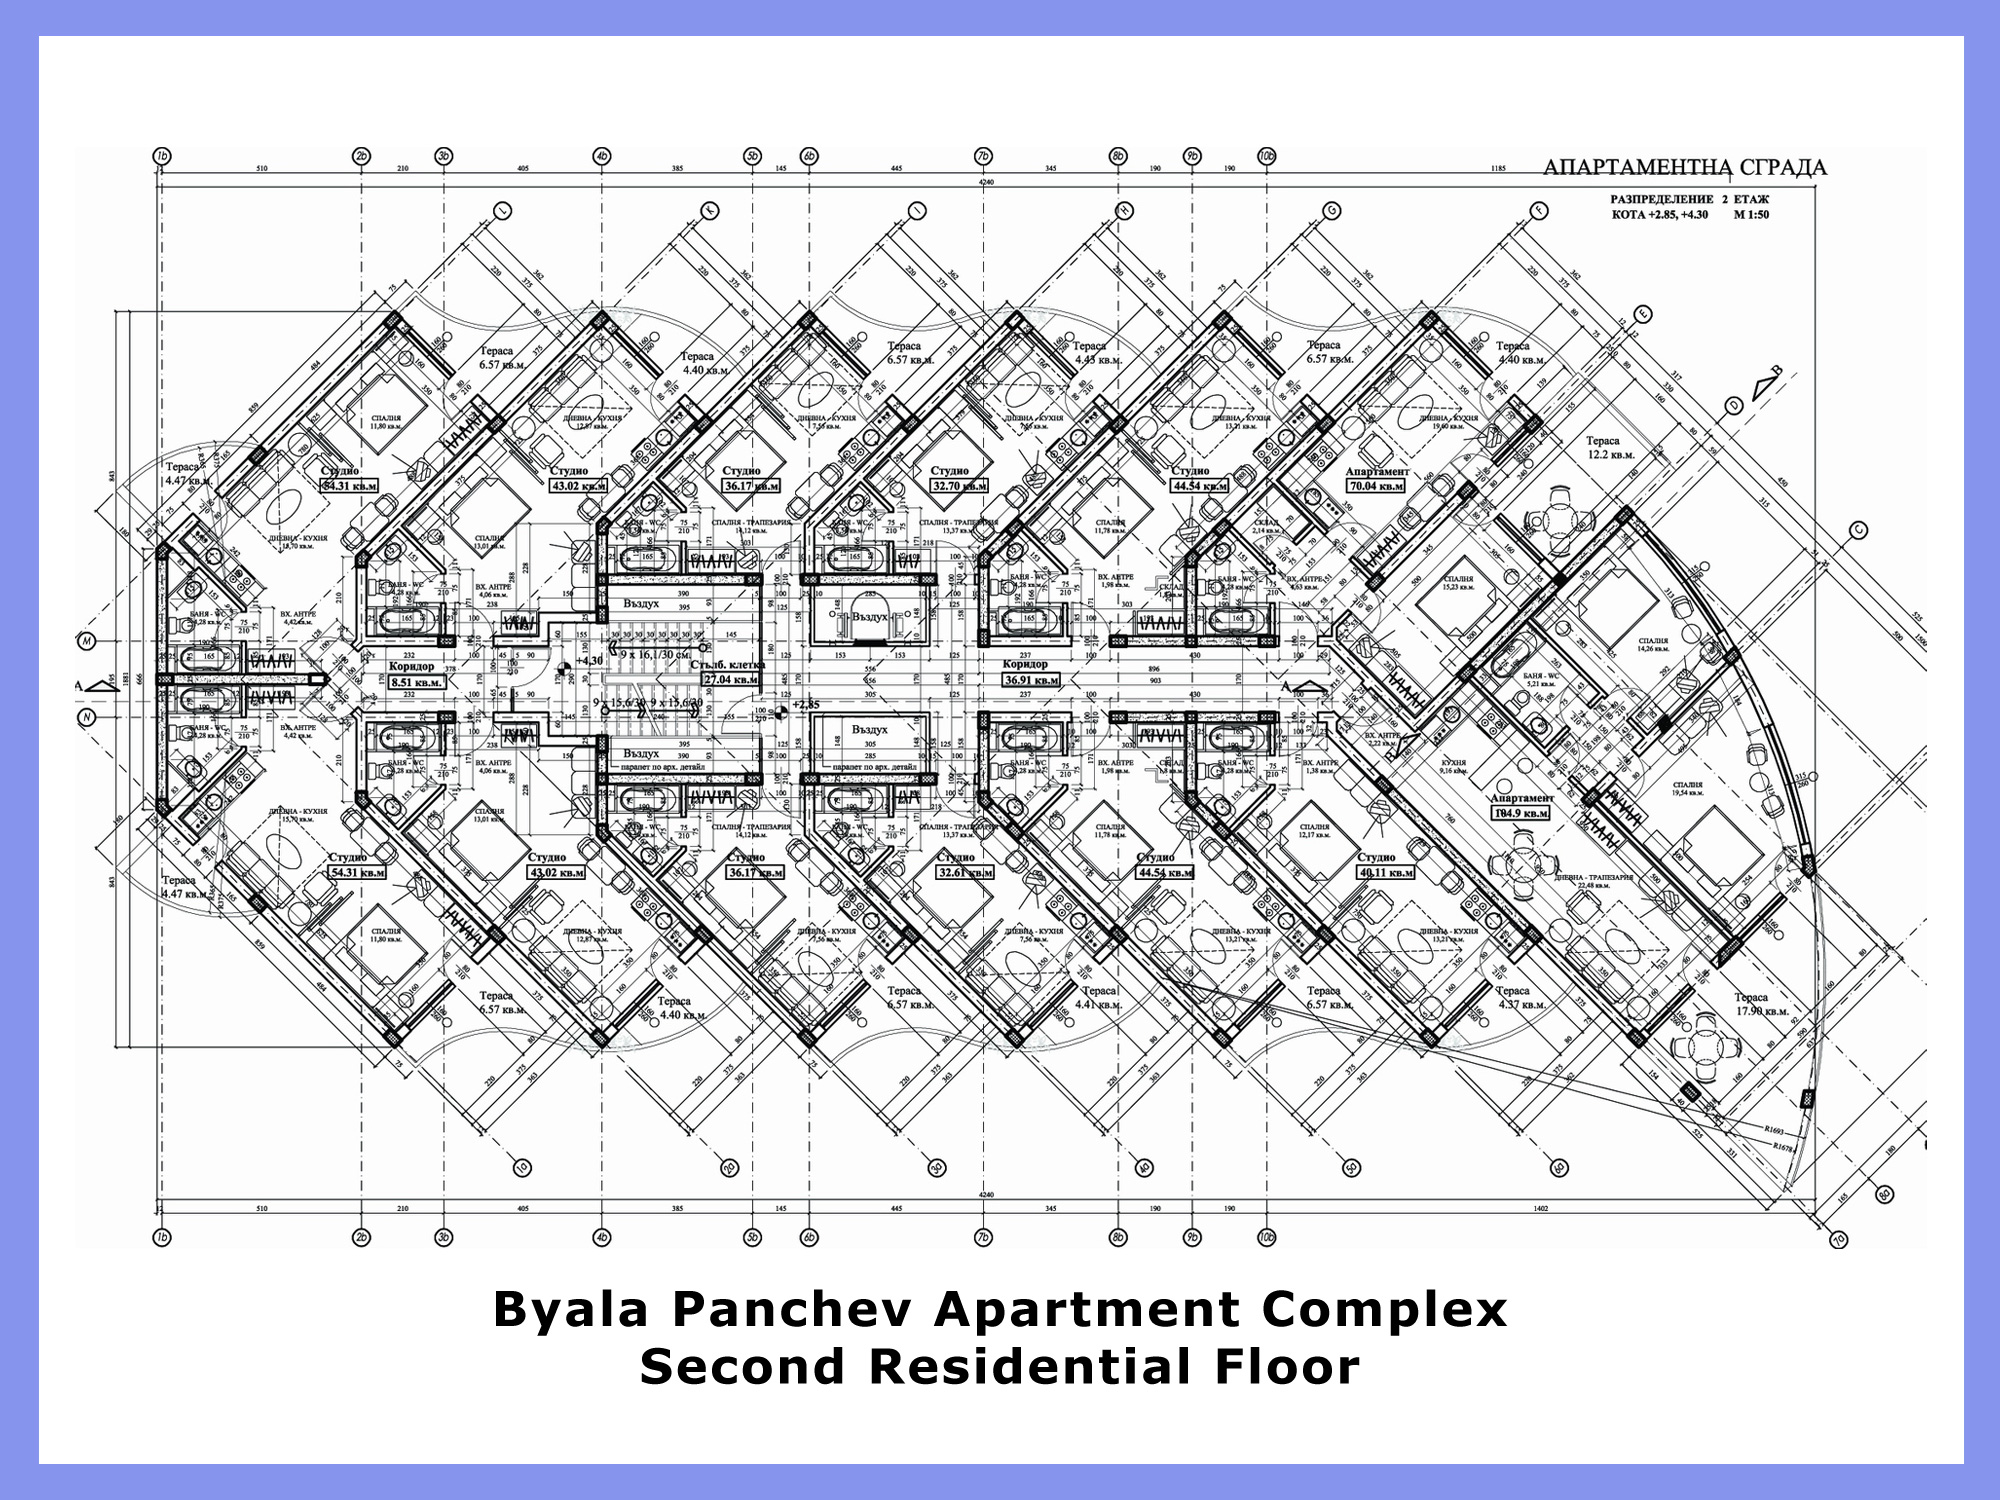 Byala panchev apartment complex Architectural floor plans